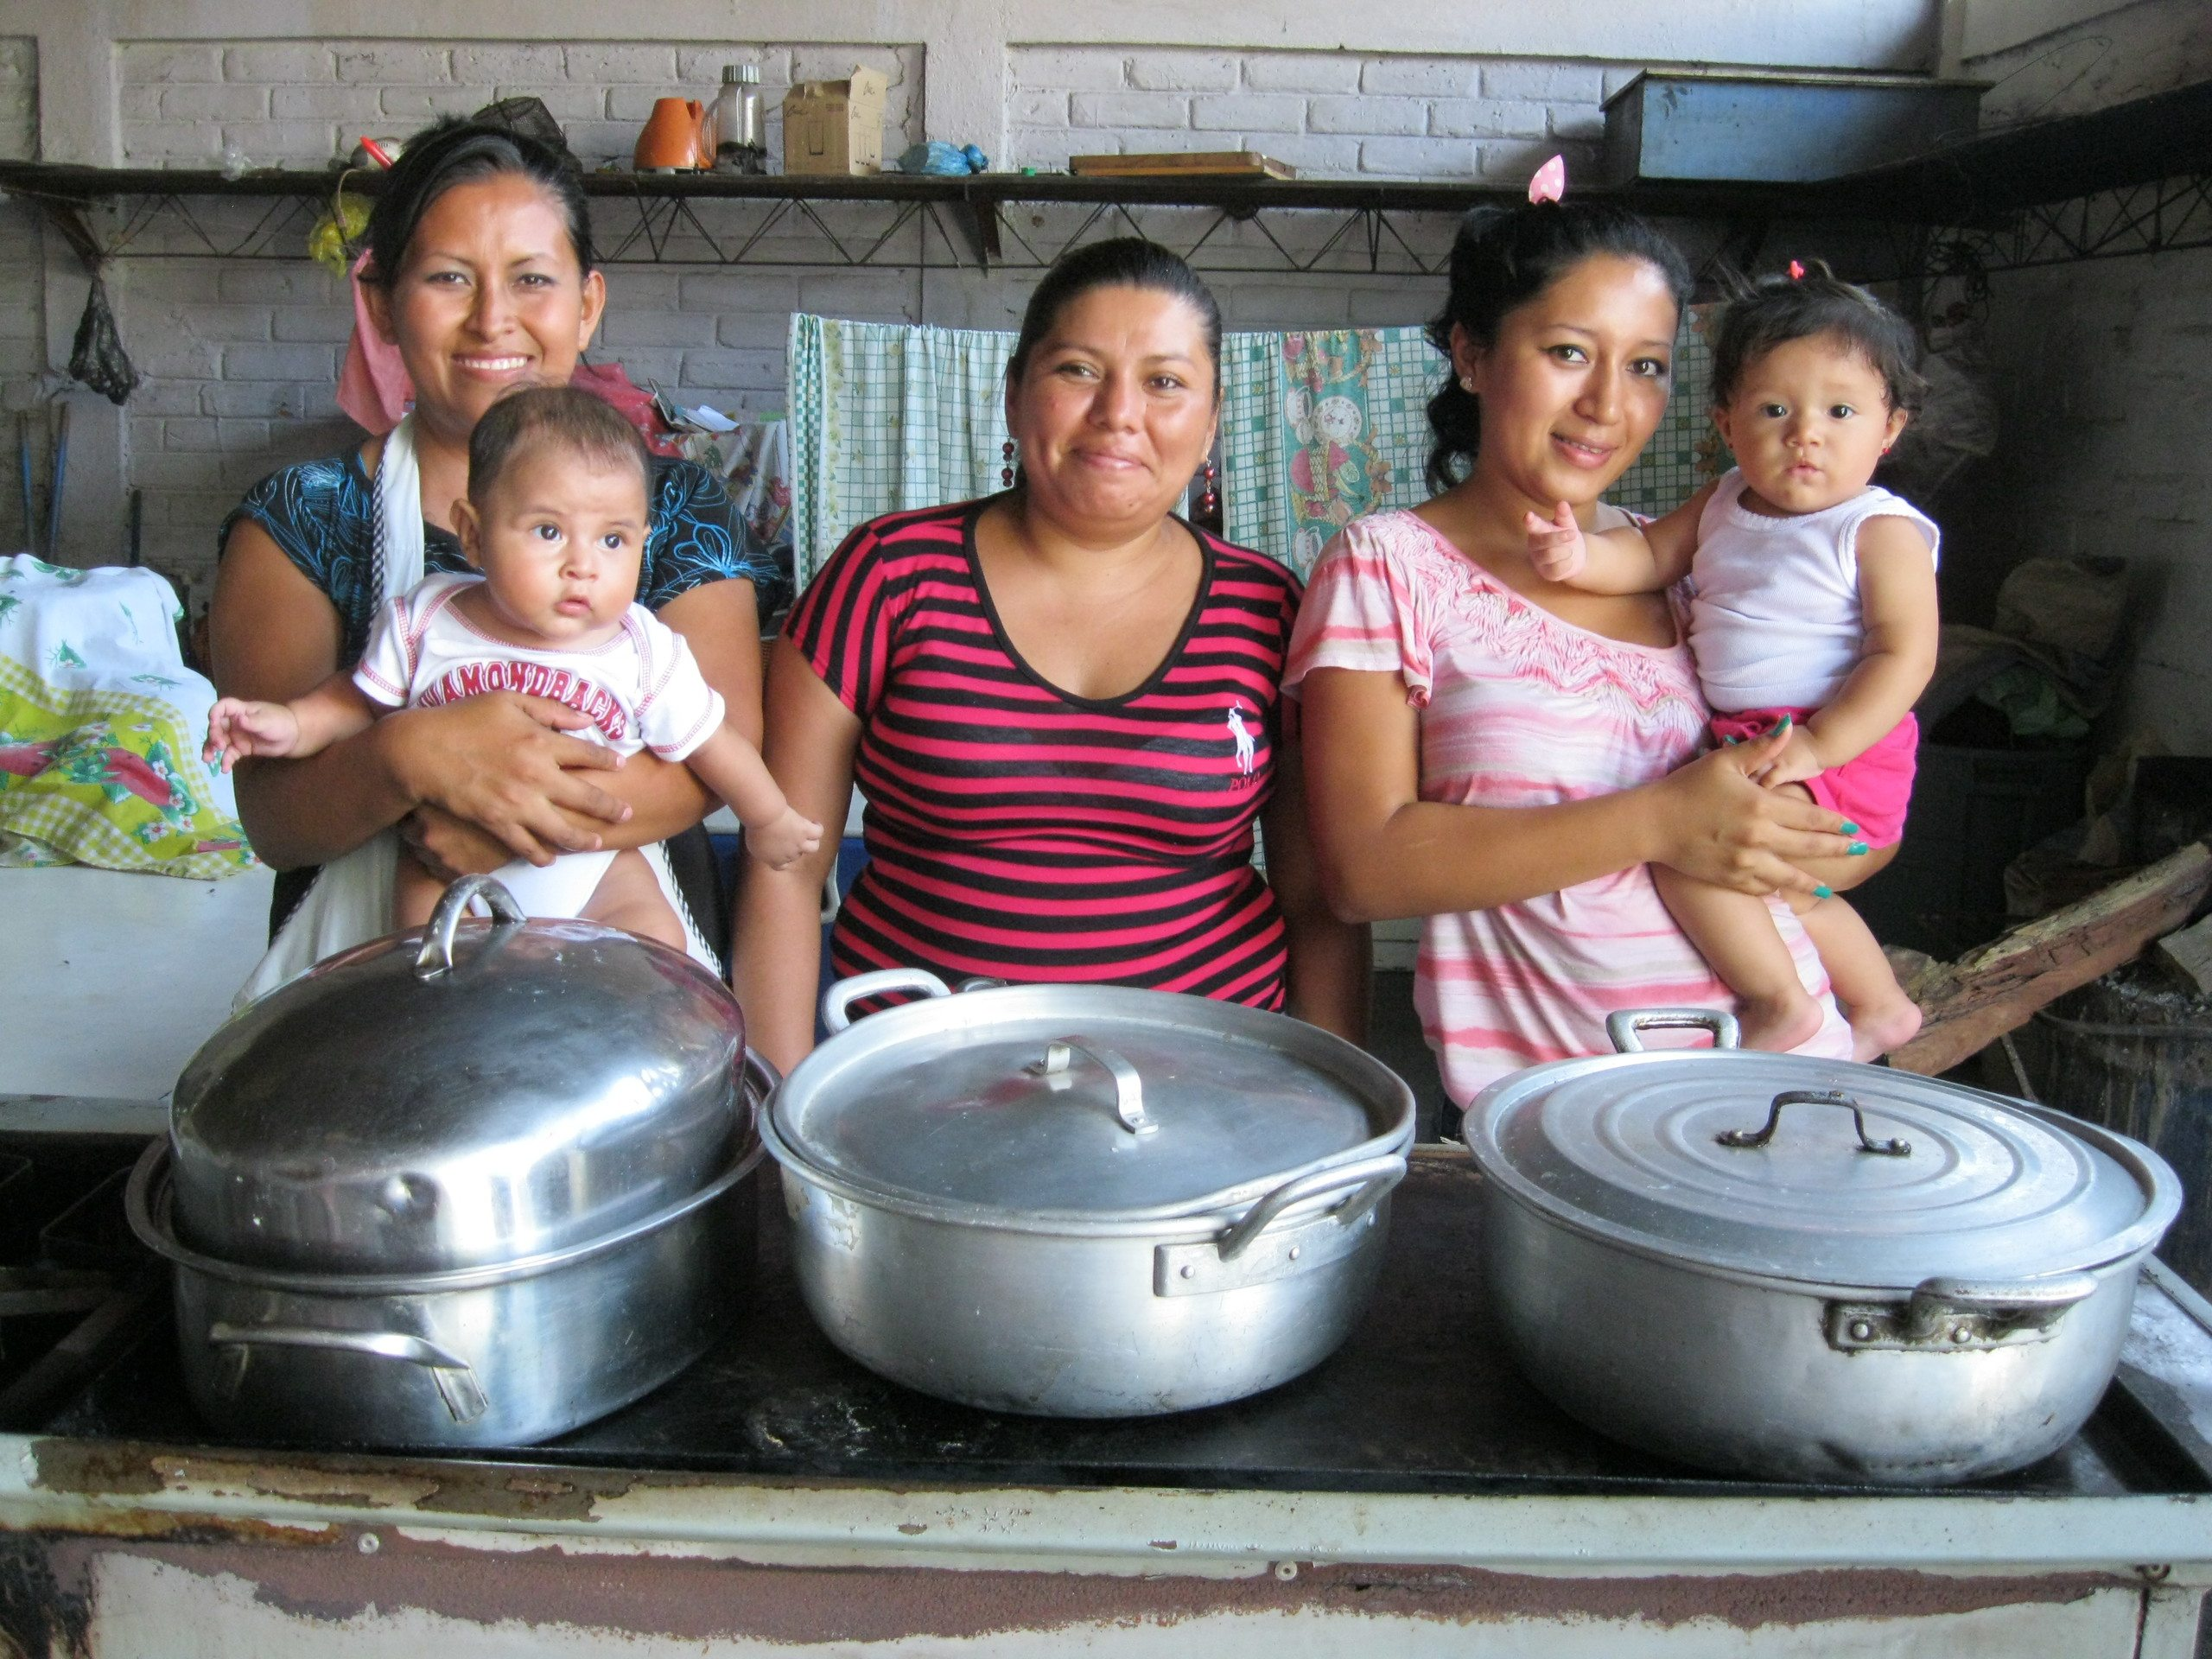 Photograph of three women, two of whom are holding babies, with three large cooking pots in front of them.